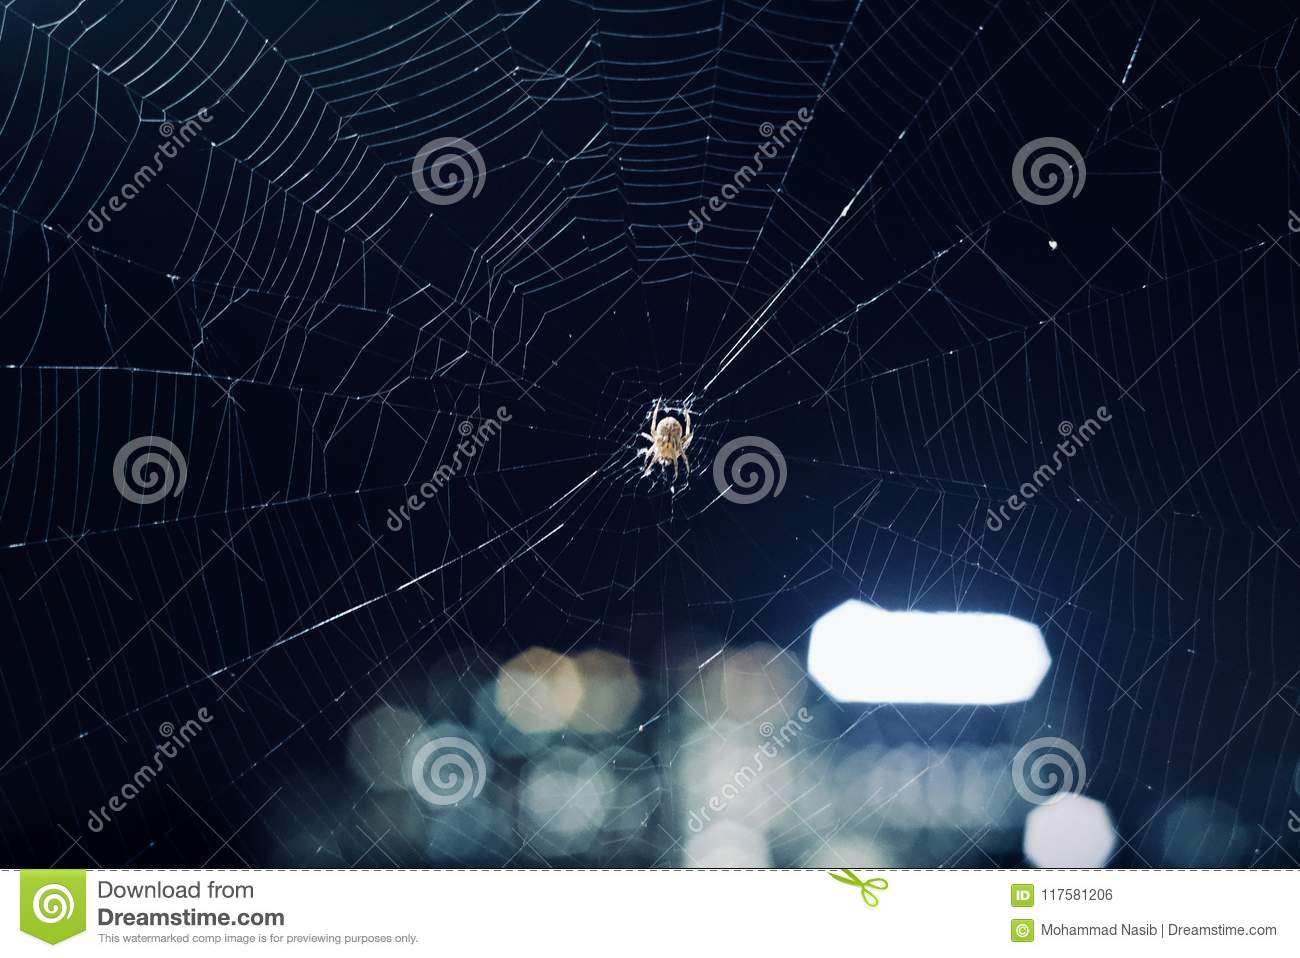 Download A Spider Within A Medium Spiderweb Background Photo Stock Photo - Image of photo, backdrop: 117581206